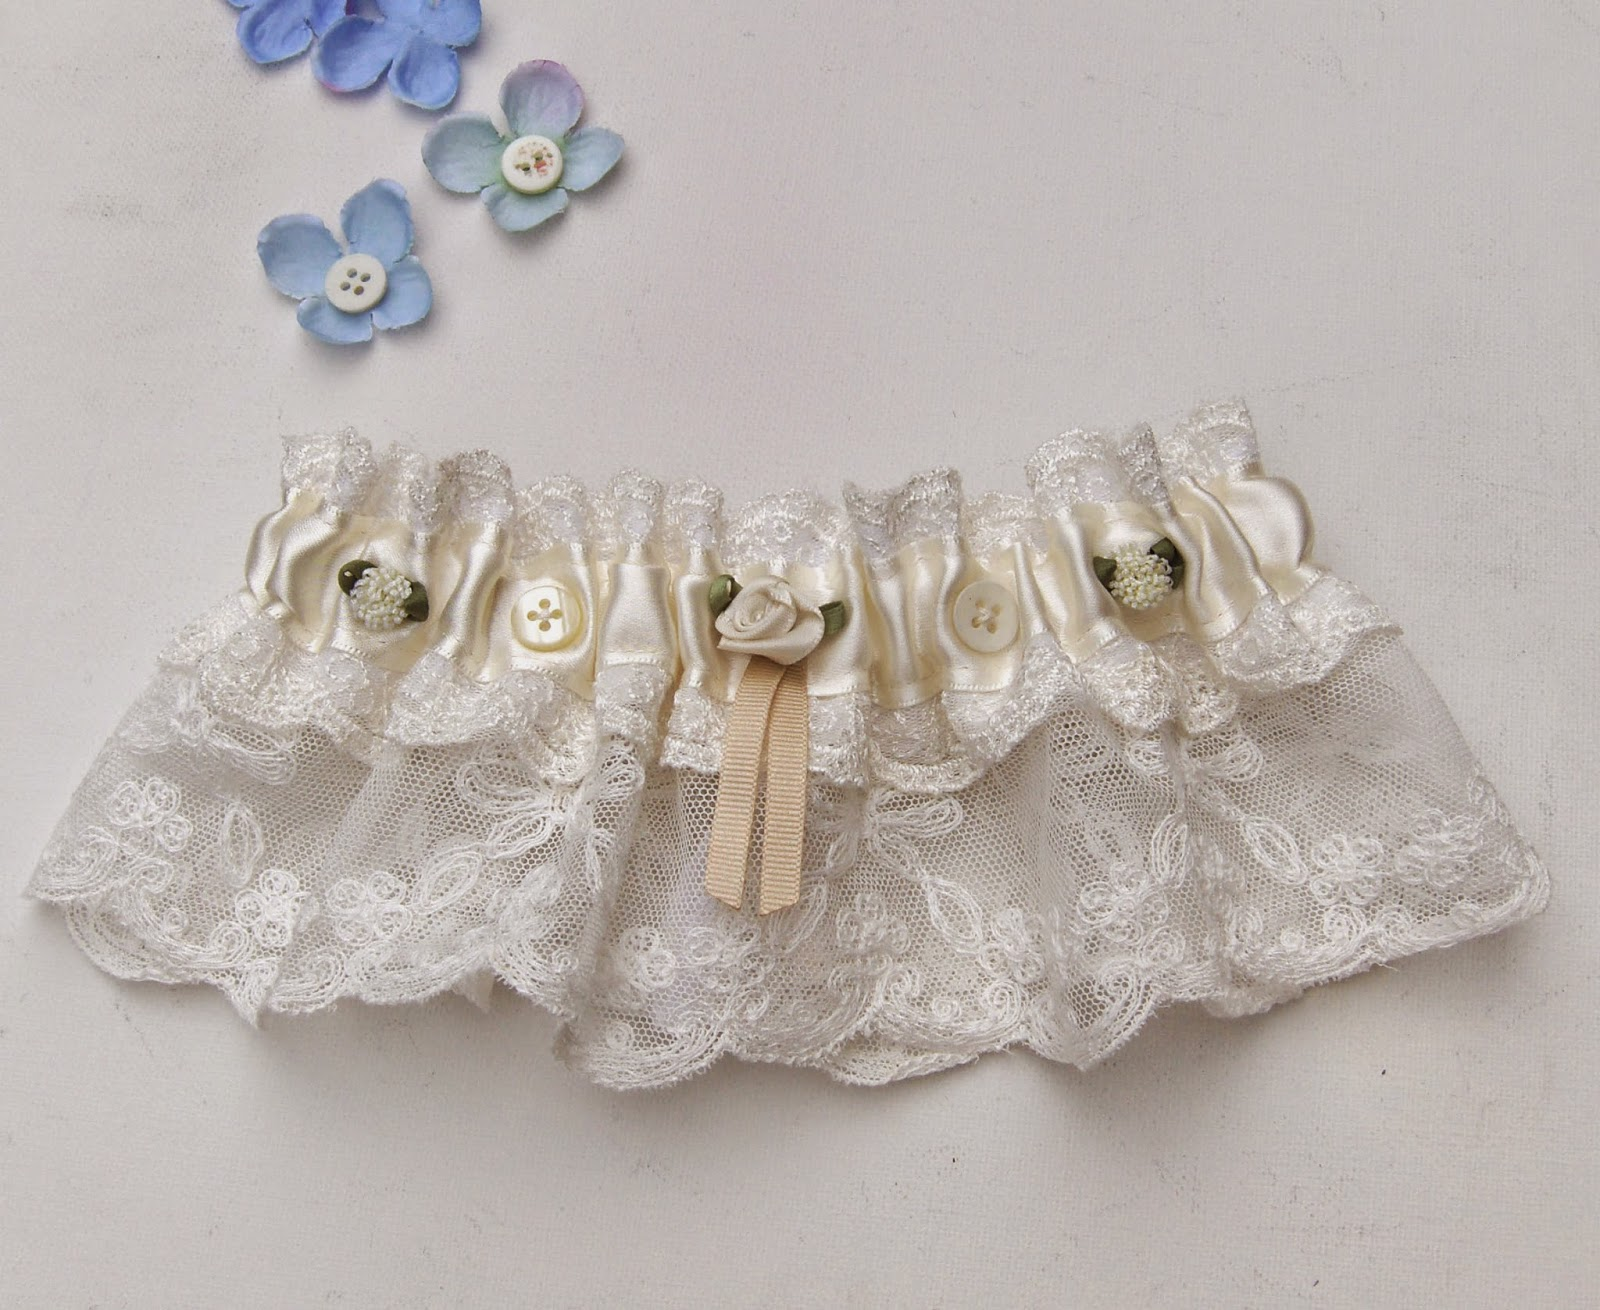 https://www.etsy.com/uk/listing/204103085/woodland-wedding-bridal-garter-ivory-uk?ref=shop_home_active_4